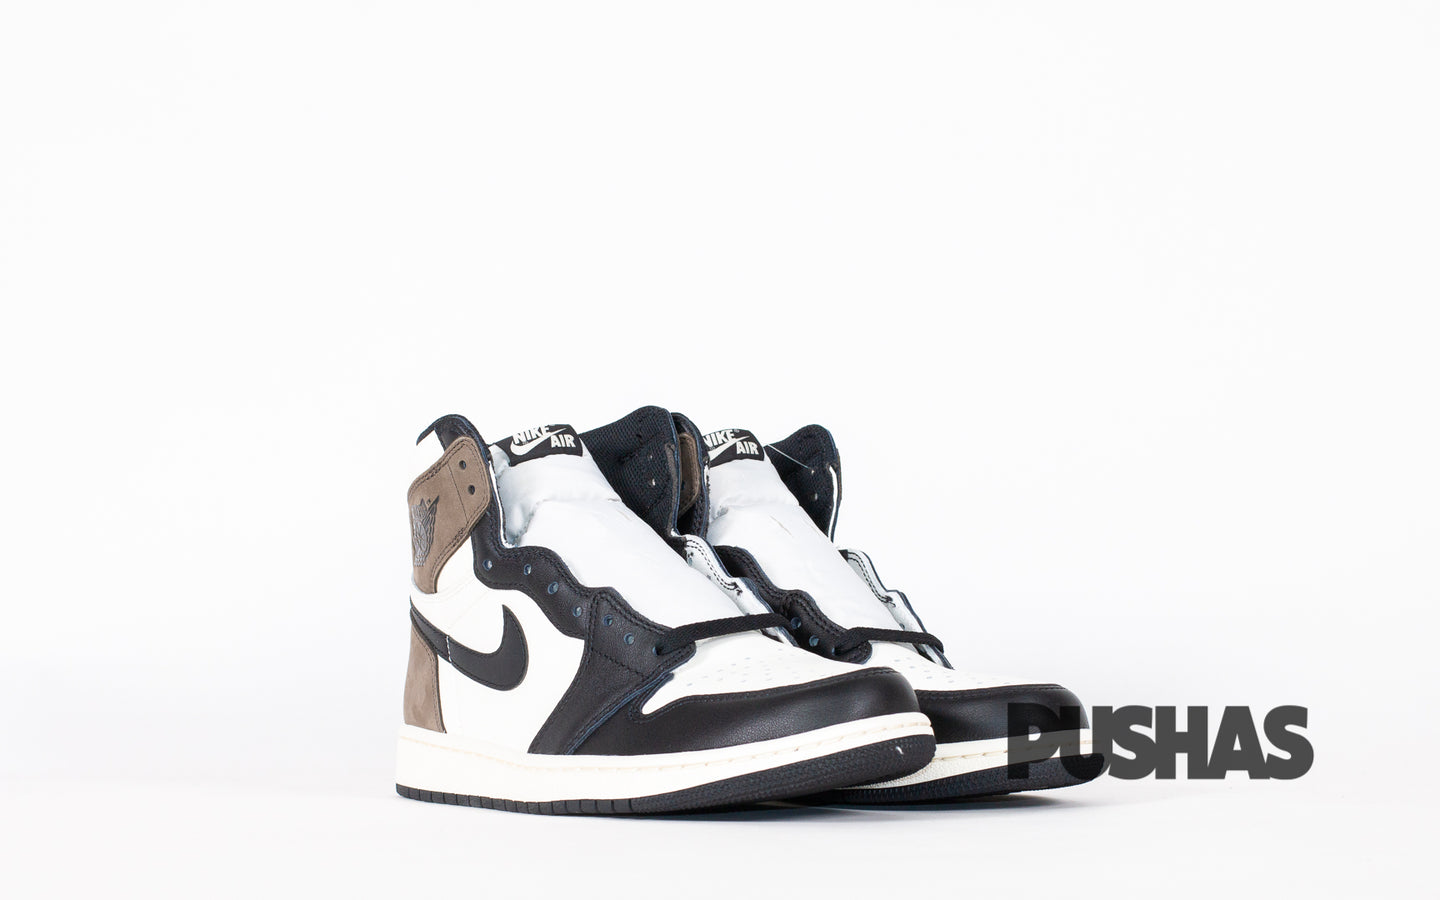 pushas-nike-Air-Jordan-1-High-Dark-Mocha